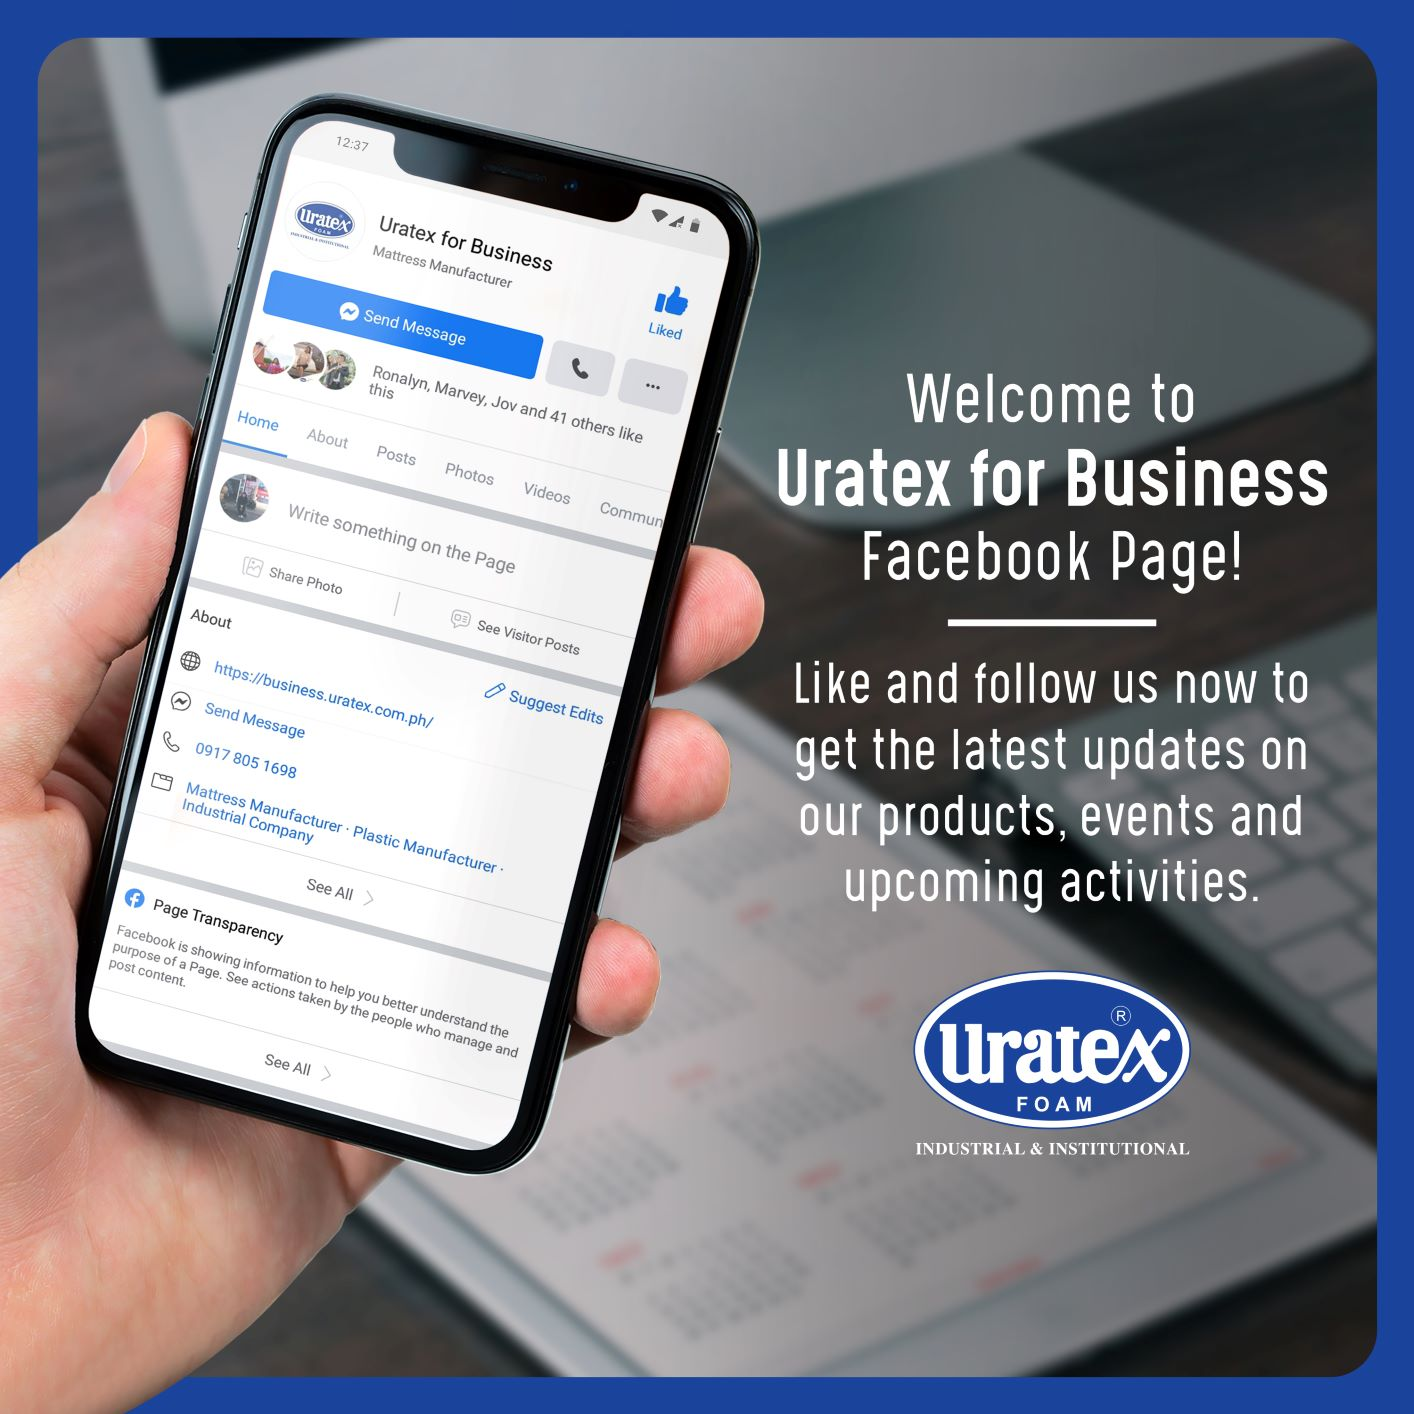 Uratex For Business Launched its Official Facebook Page and Viber Community